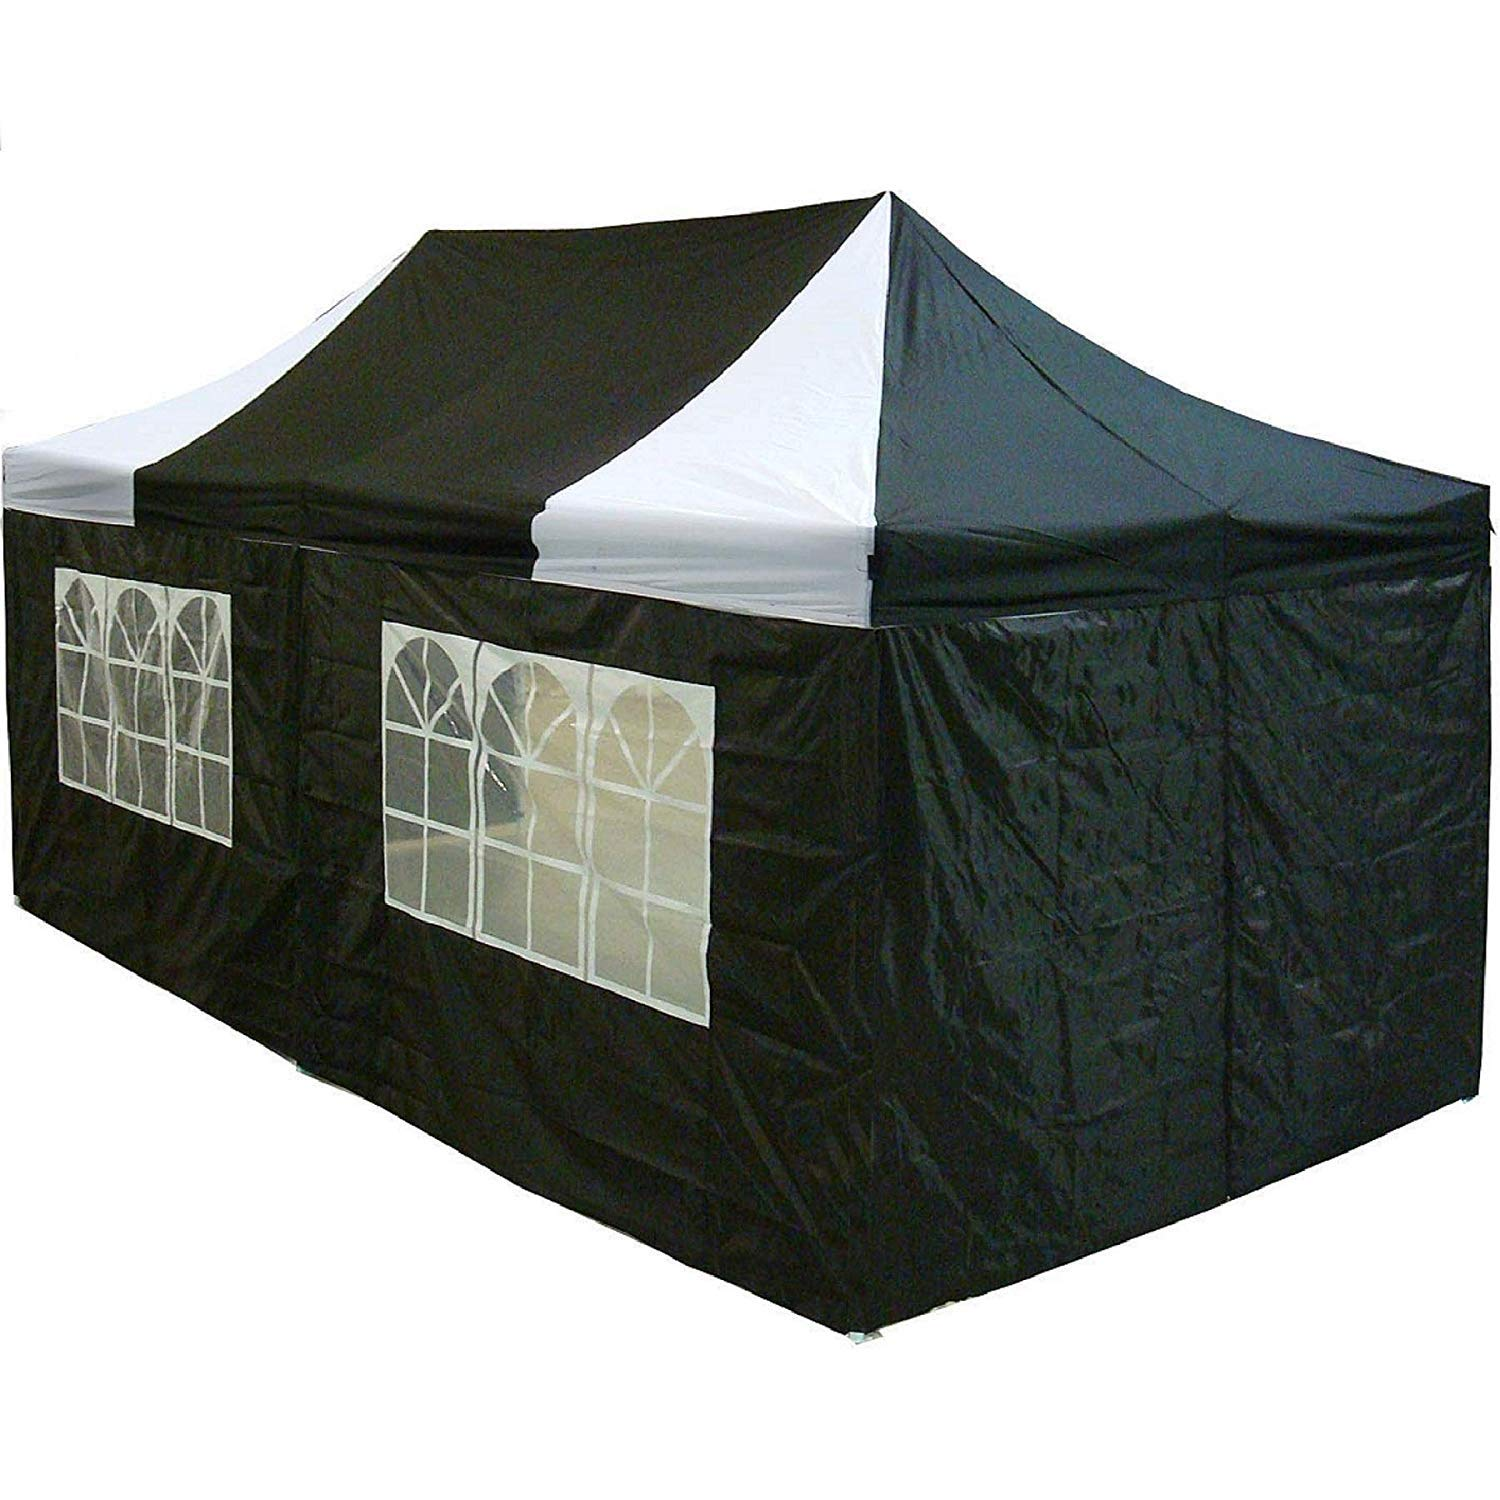 10 x20 Pop up 6 Walls Canopy Party Tent Gazebo Ez Black White – F Model Upgraded Frame By DELTA Canopies